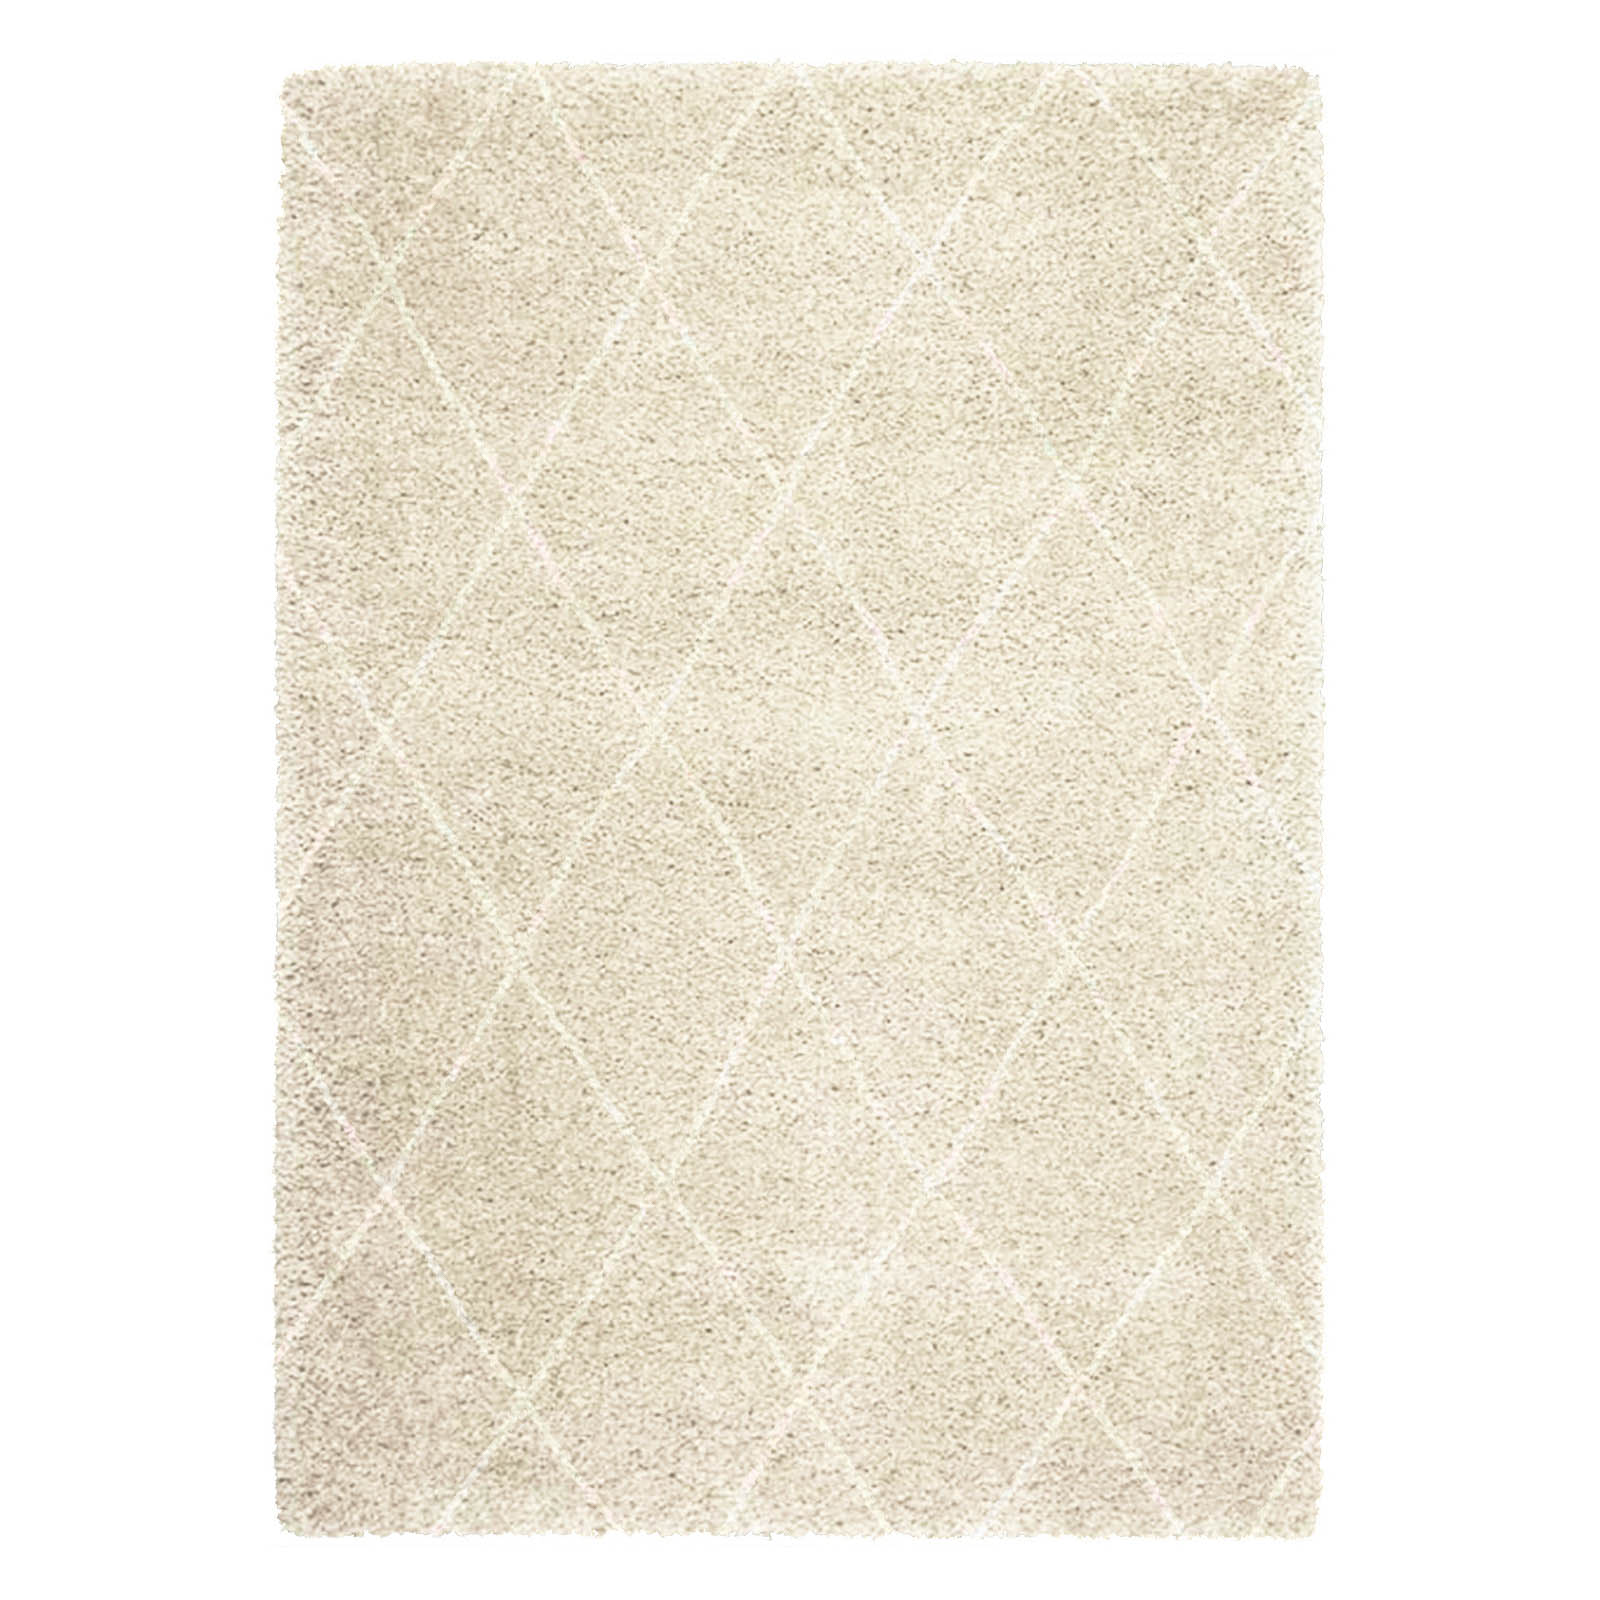 Logan Rugs LG06 in Beige and Ivory